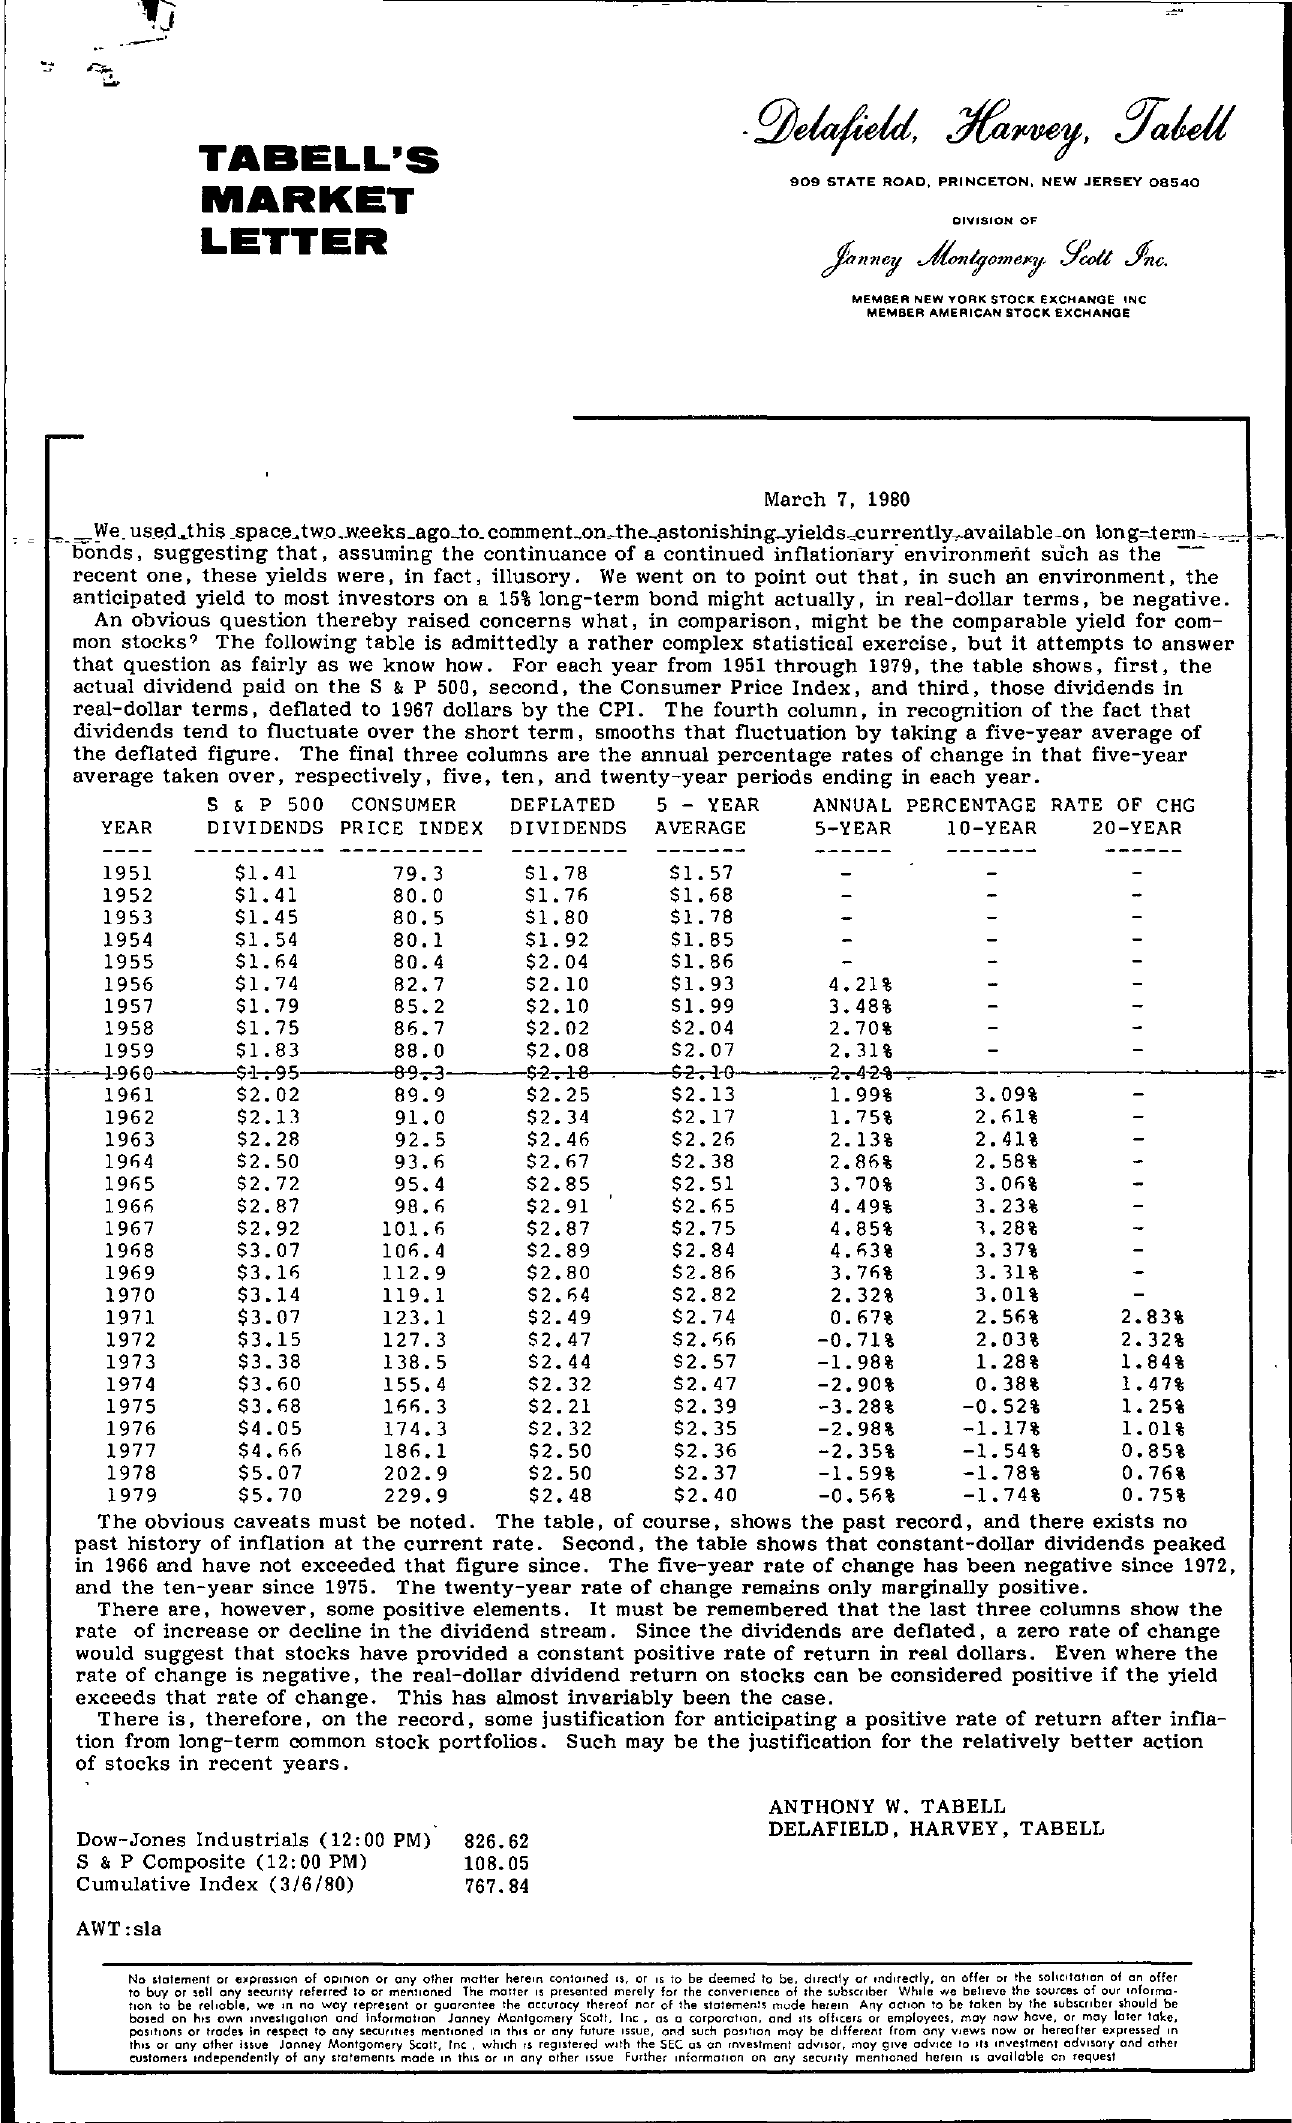 Tabell's Market Letter - March 07, 1980